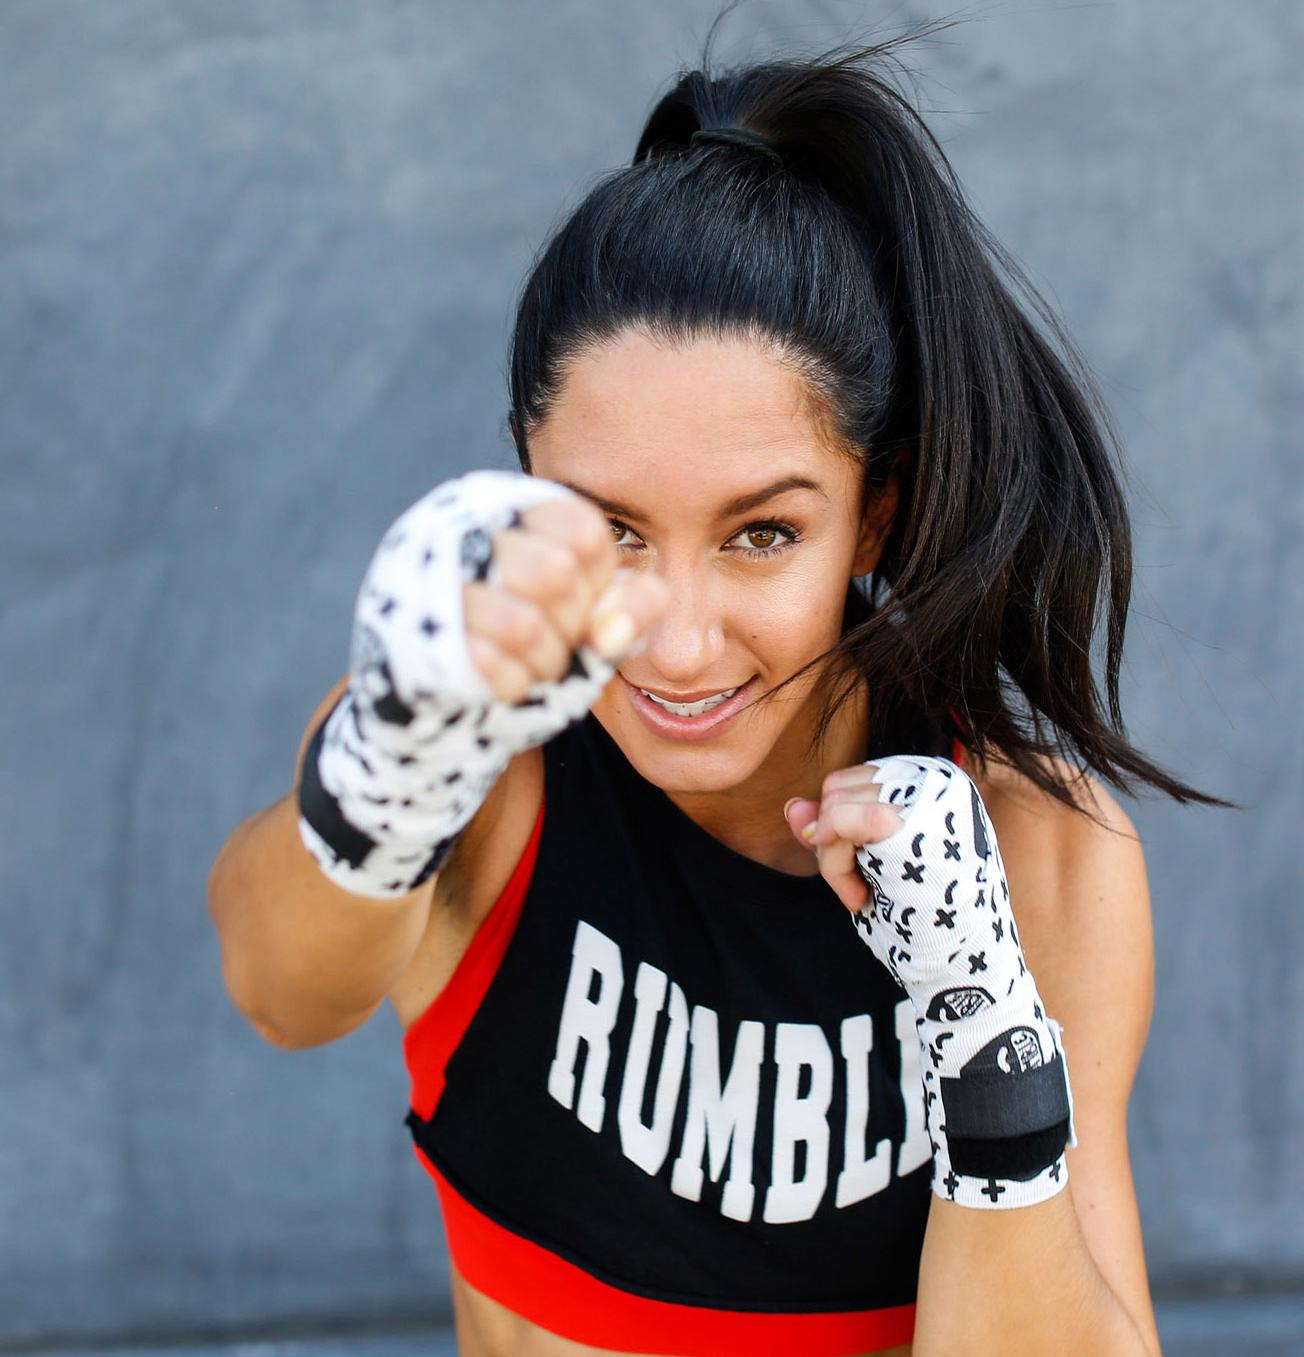 The boxing-inspired boutique brand was acquired by Xponential Fitness in March 2021 / Rumble/Xponential Fitness